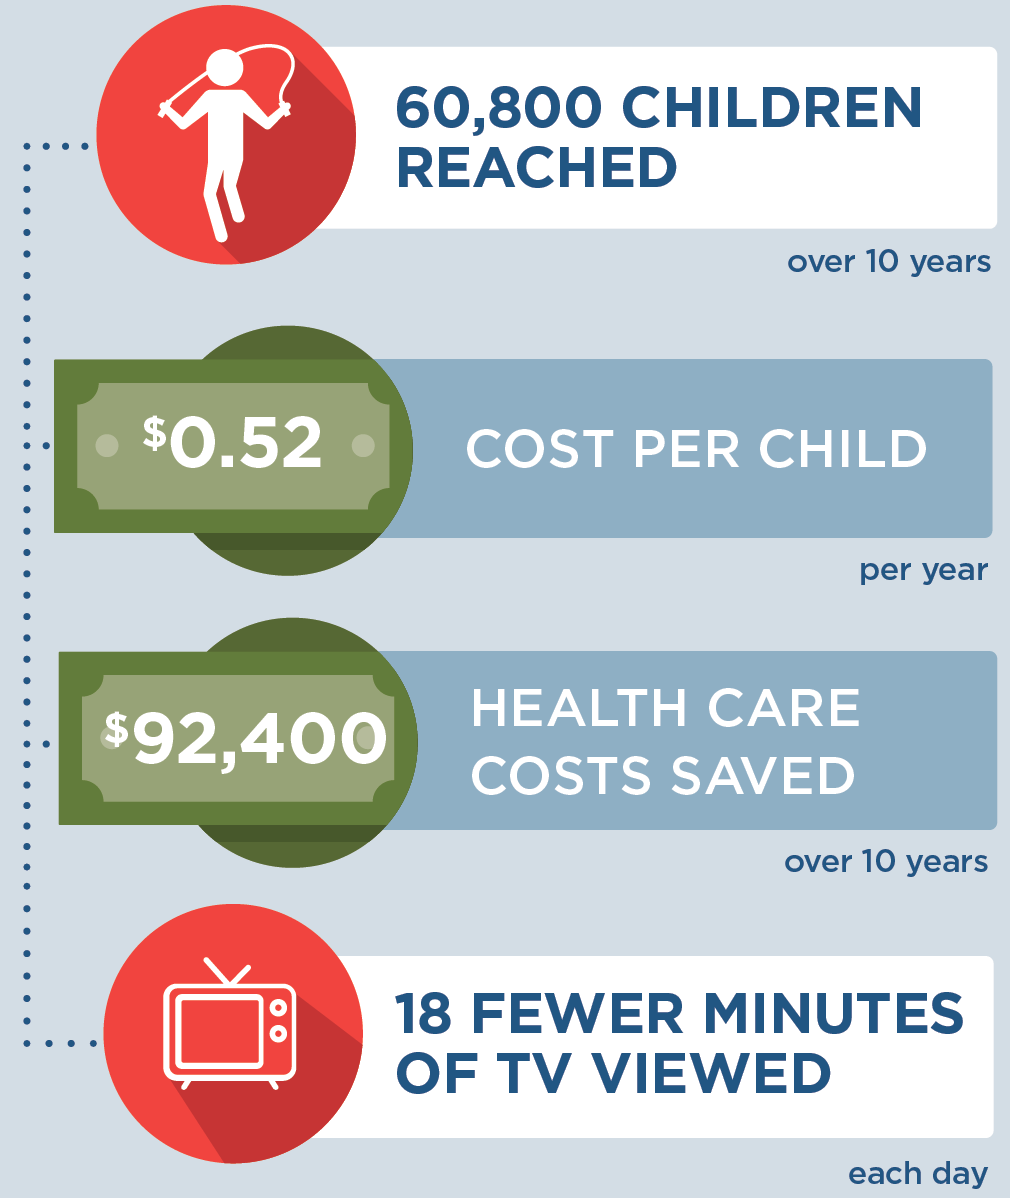 If WIC television time reduction was implemented in Arkansas, then 60,800 children would be reached over 10 years. It would cost $0.52 per child per year to implement, and save $92,400 in health care costs over 10 years. Children would view 18 fewer minutes of TV each day.